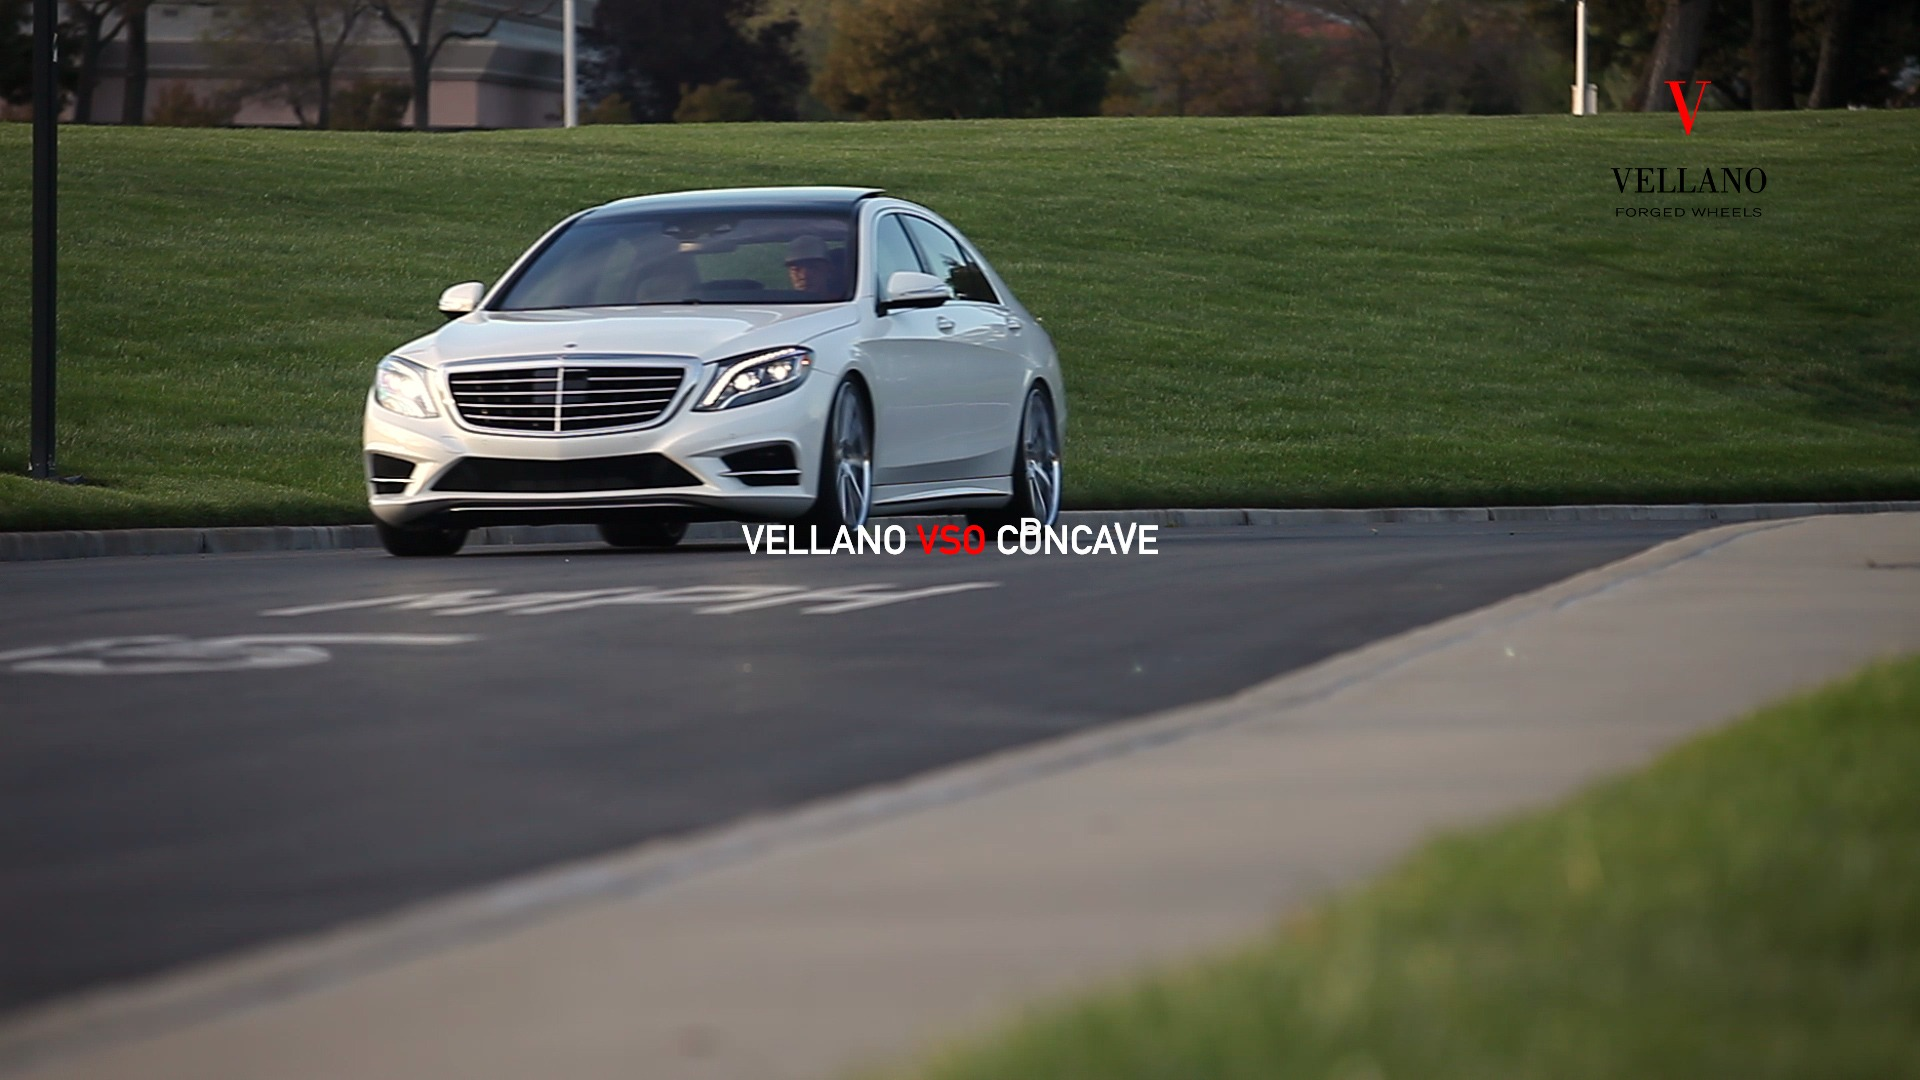 MERCEDES BENZ ON VSO CONCAVE